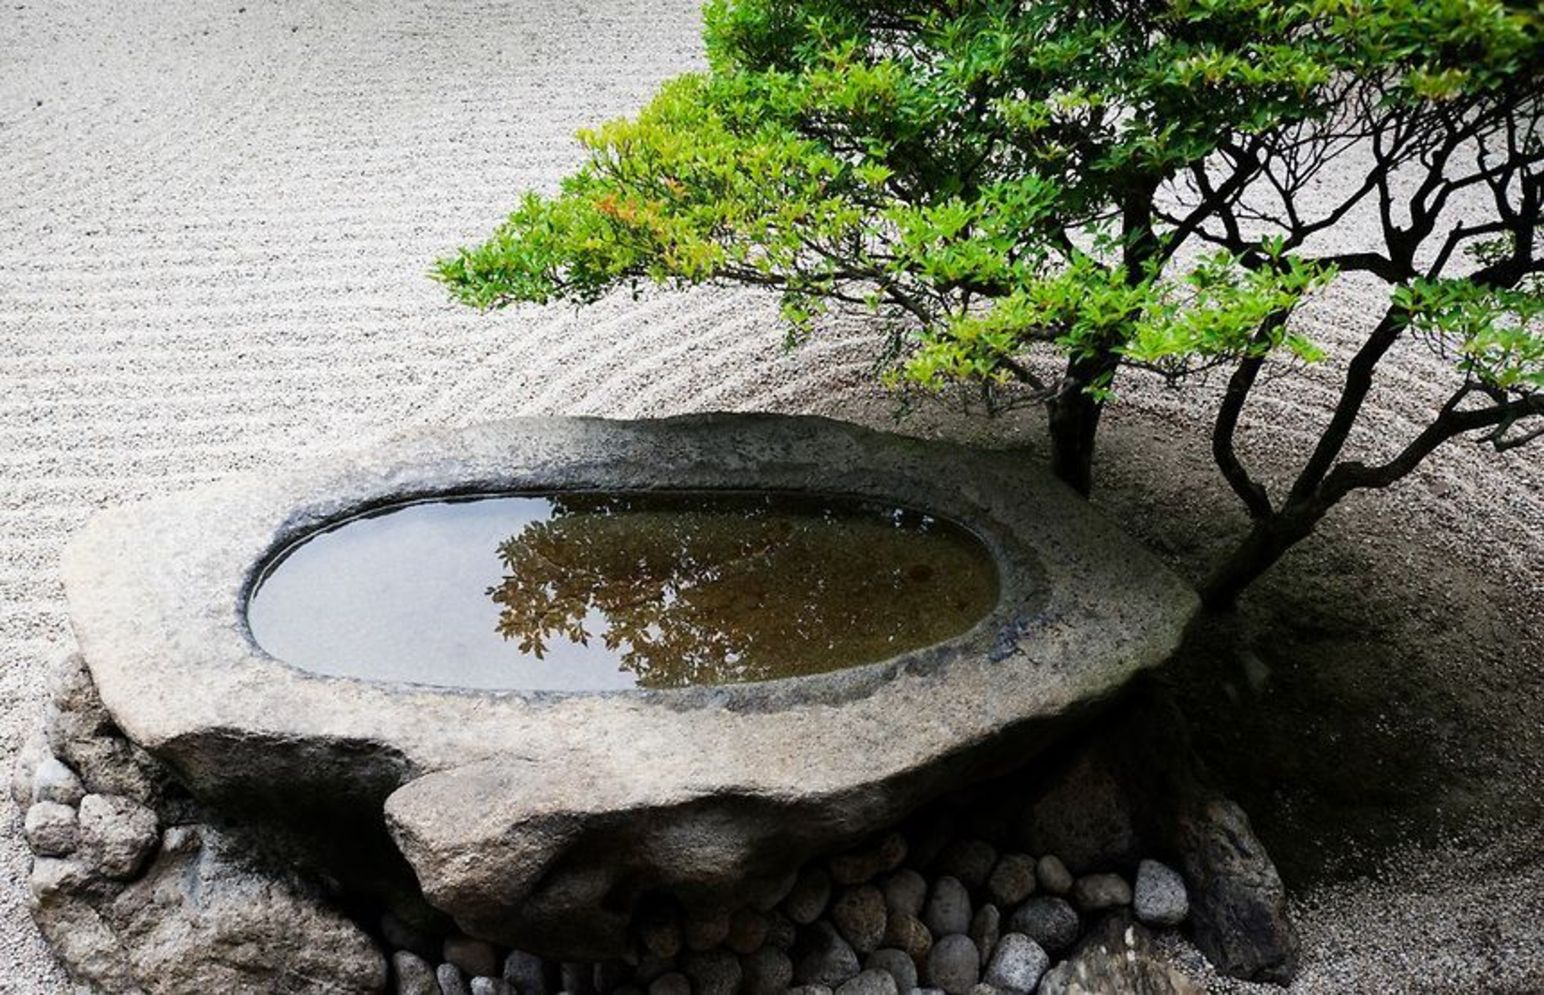 Beautiful Zen garden style with peaceful arrangements creating peaceful and harmonies display that will calm our mind Image 5